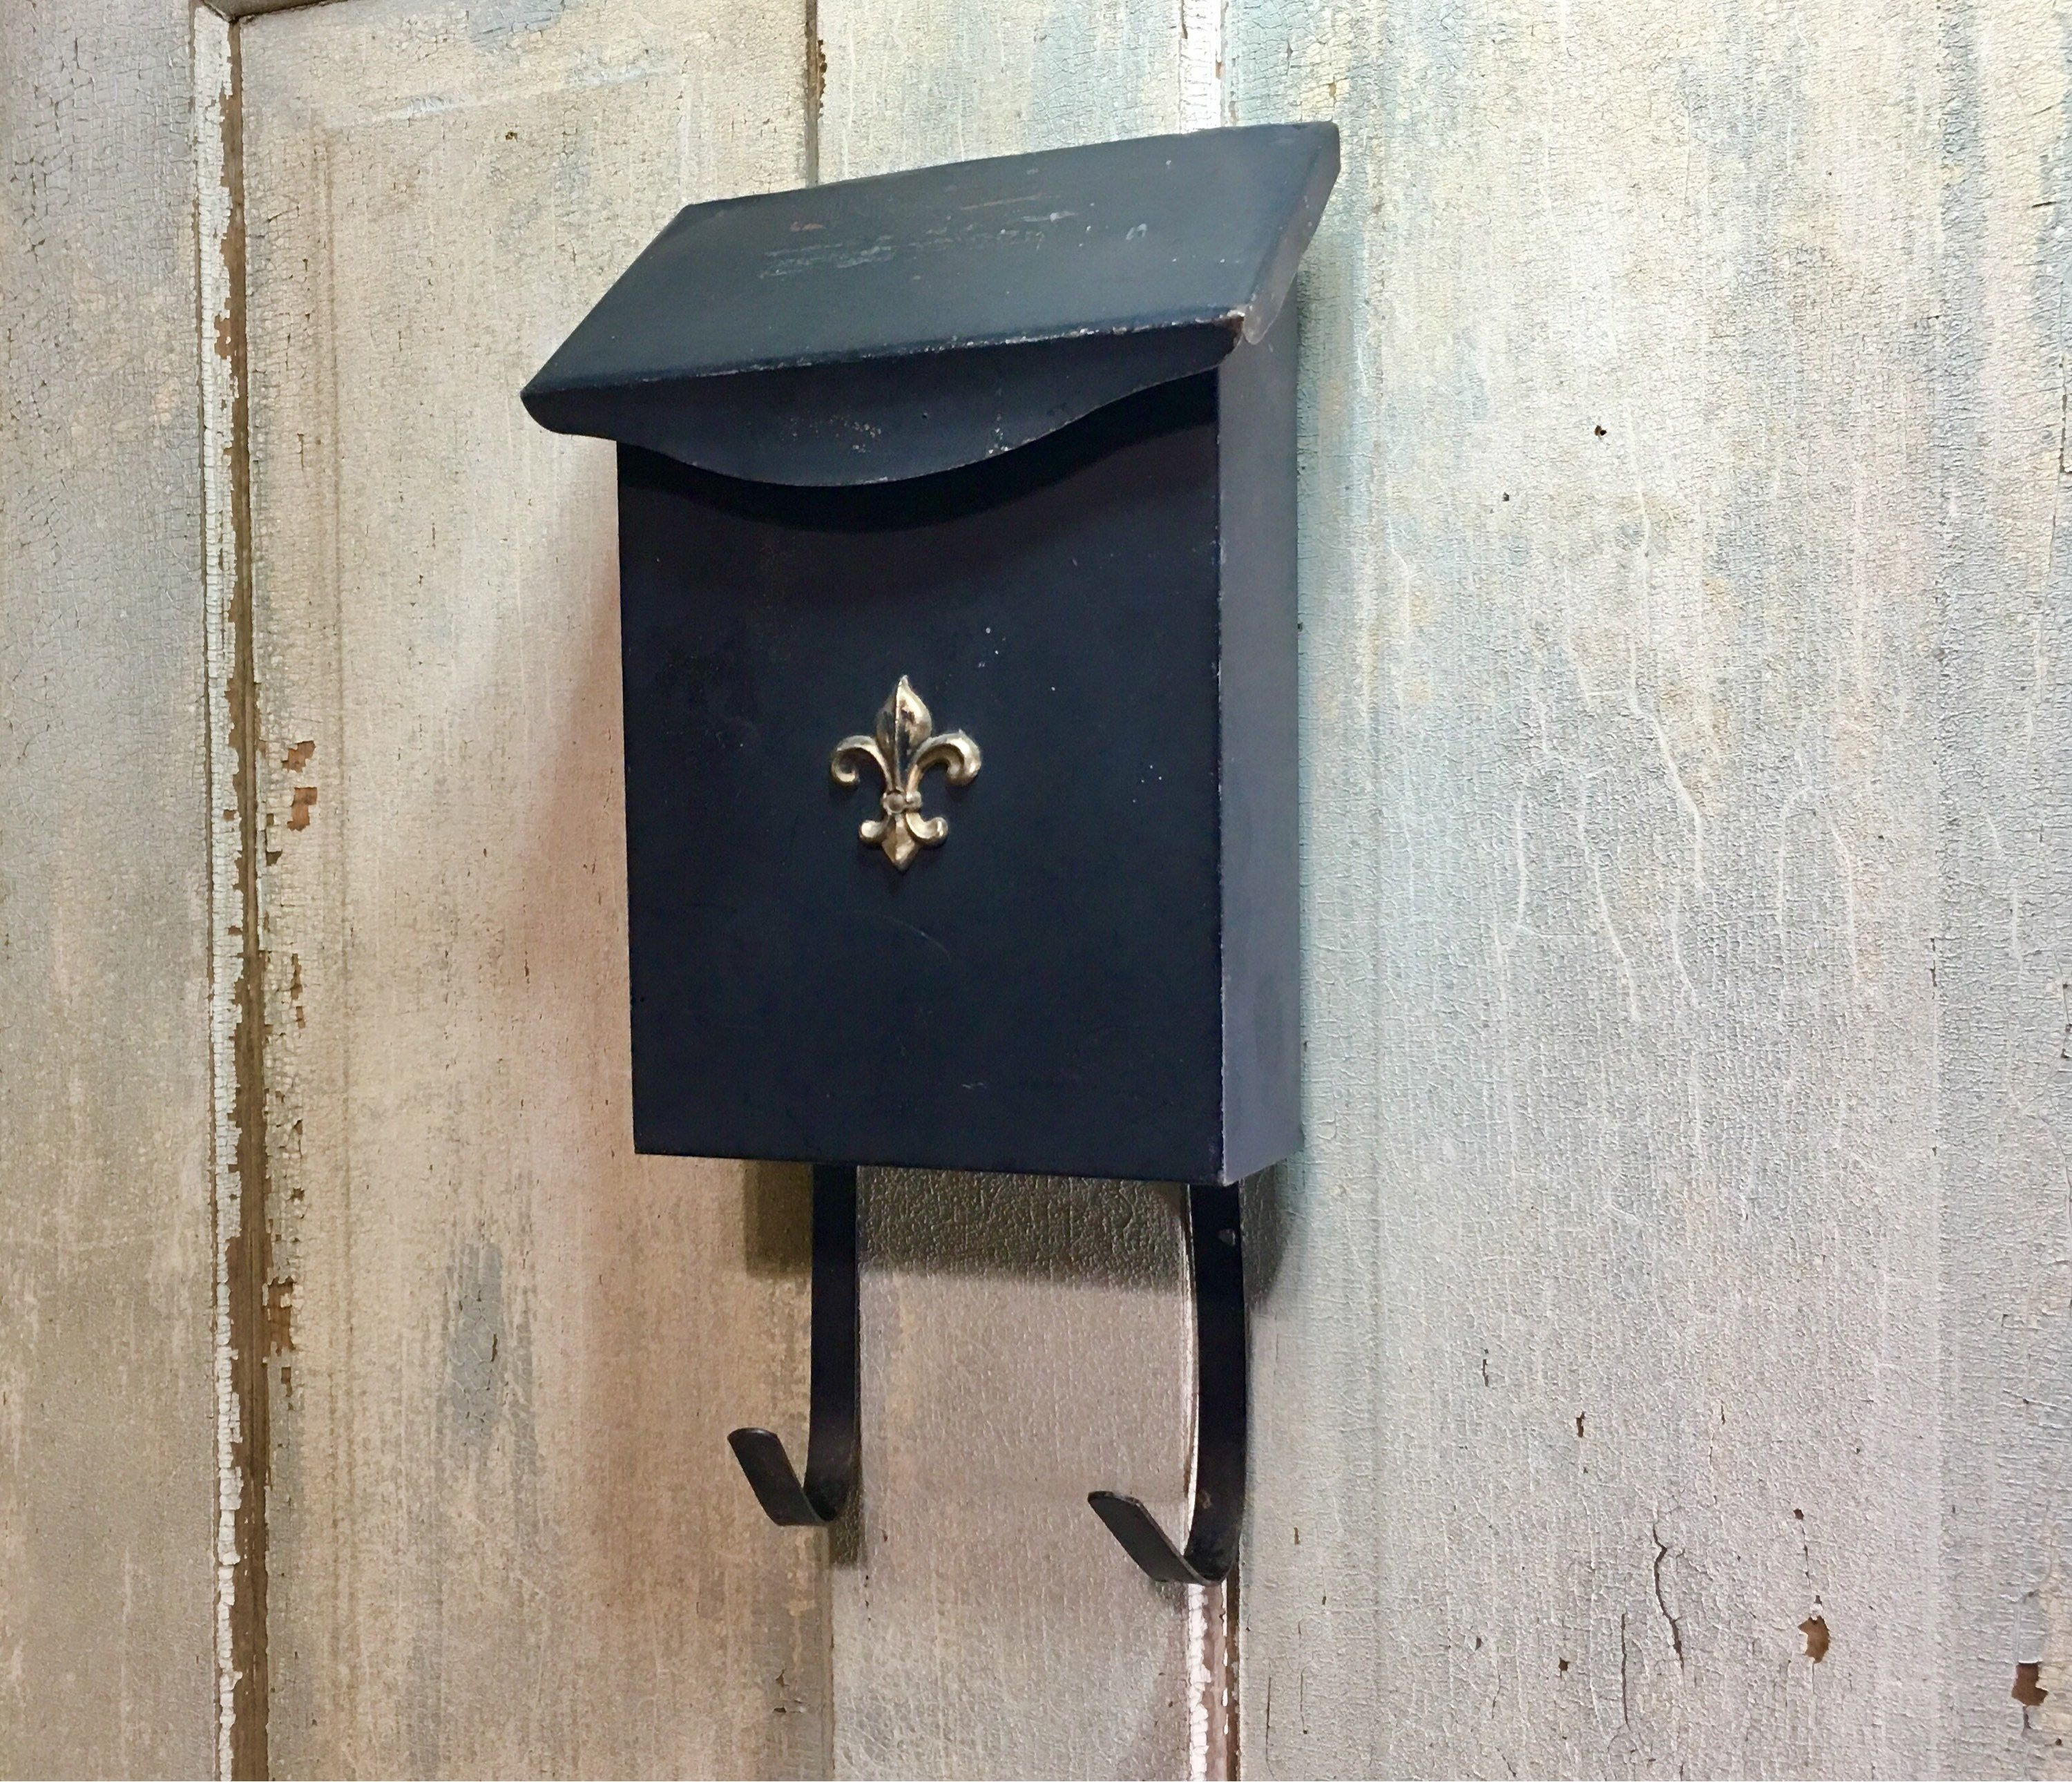 Vintage Rustic Black Metal Wall Mount Old Cottage Style Mailbox Newspaper Holder Apartment Letter Holder Repurposed Upcy Rustic Black Old Cottage Cottage Style